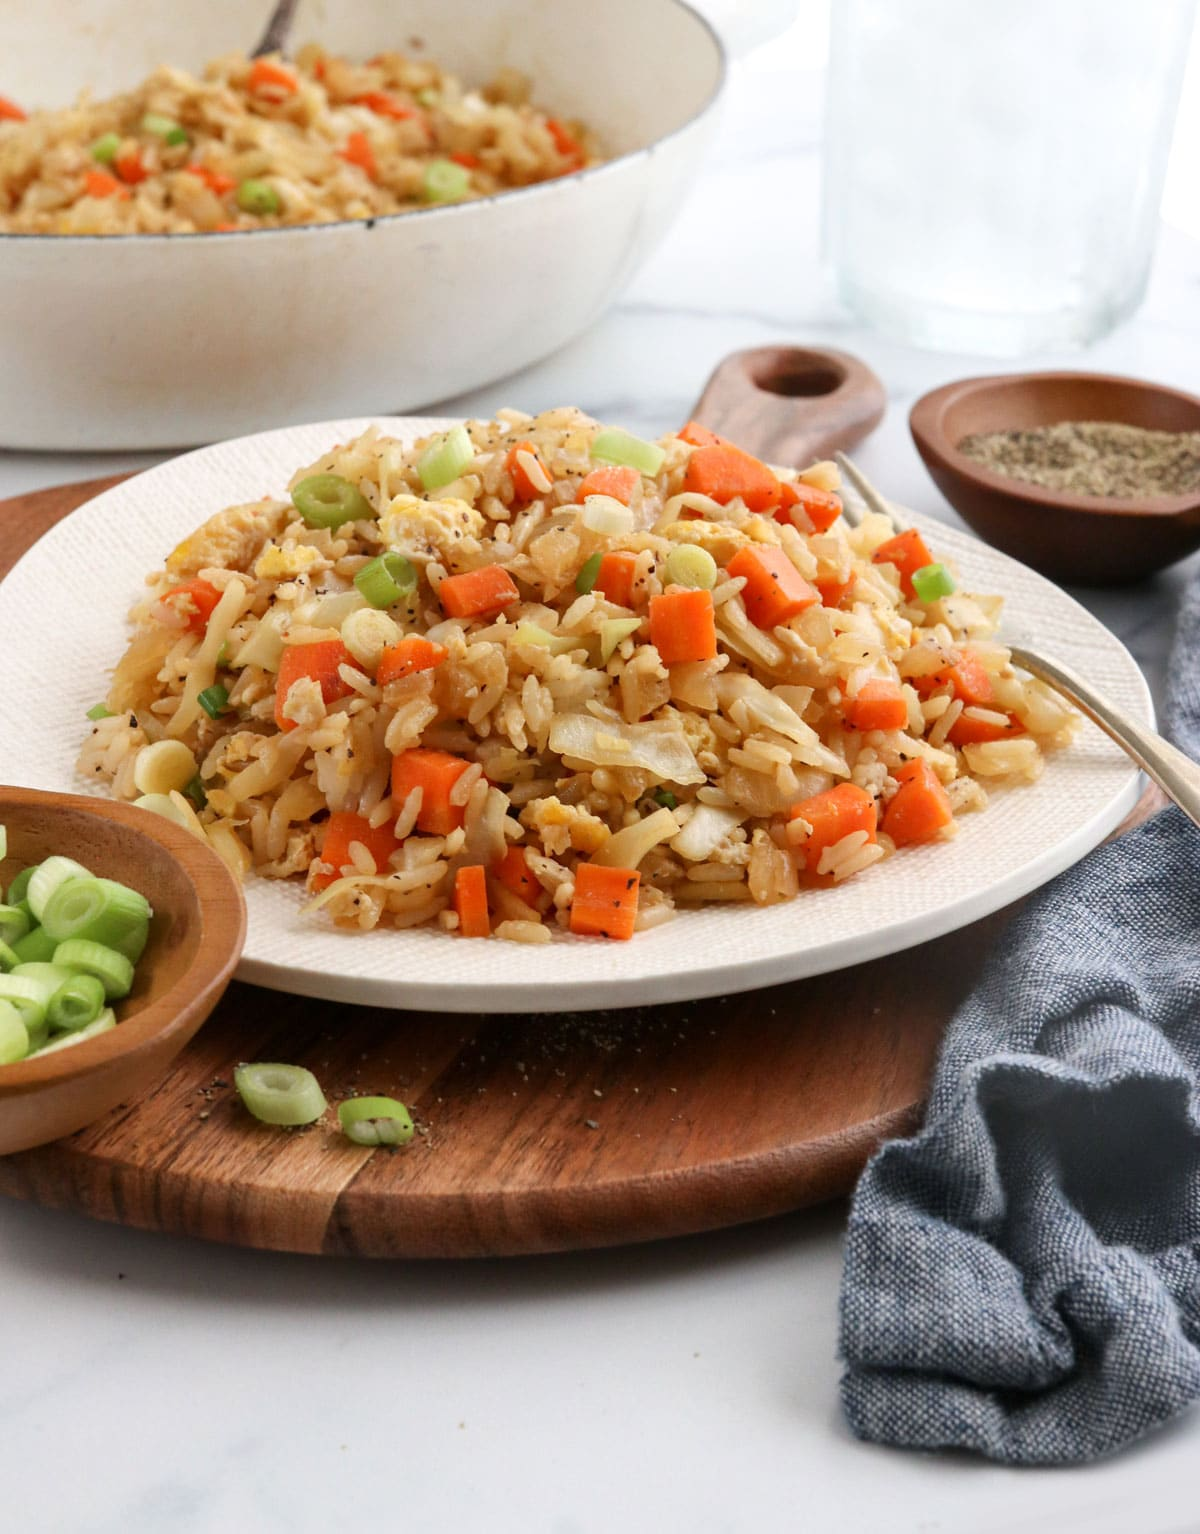 veggie fried rice on white plate with fork